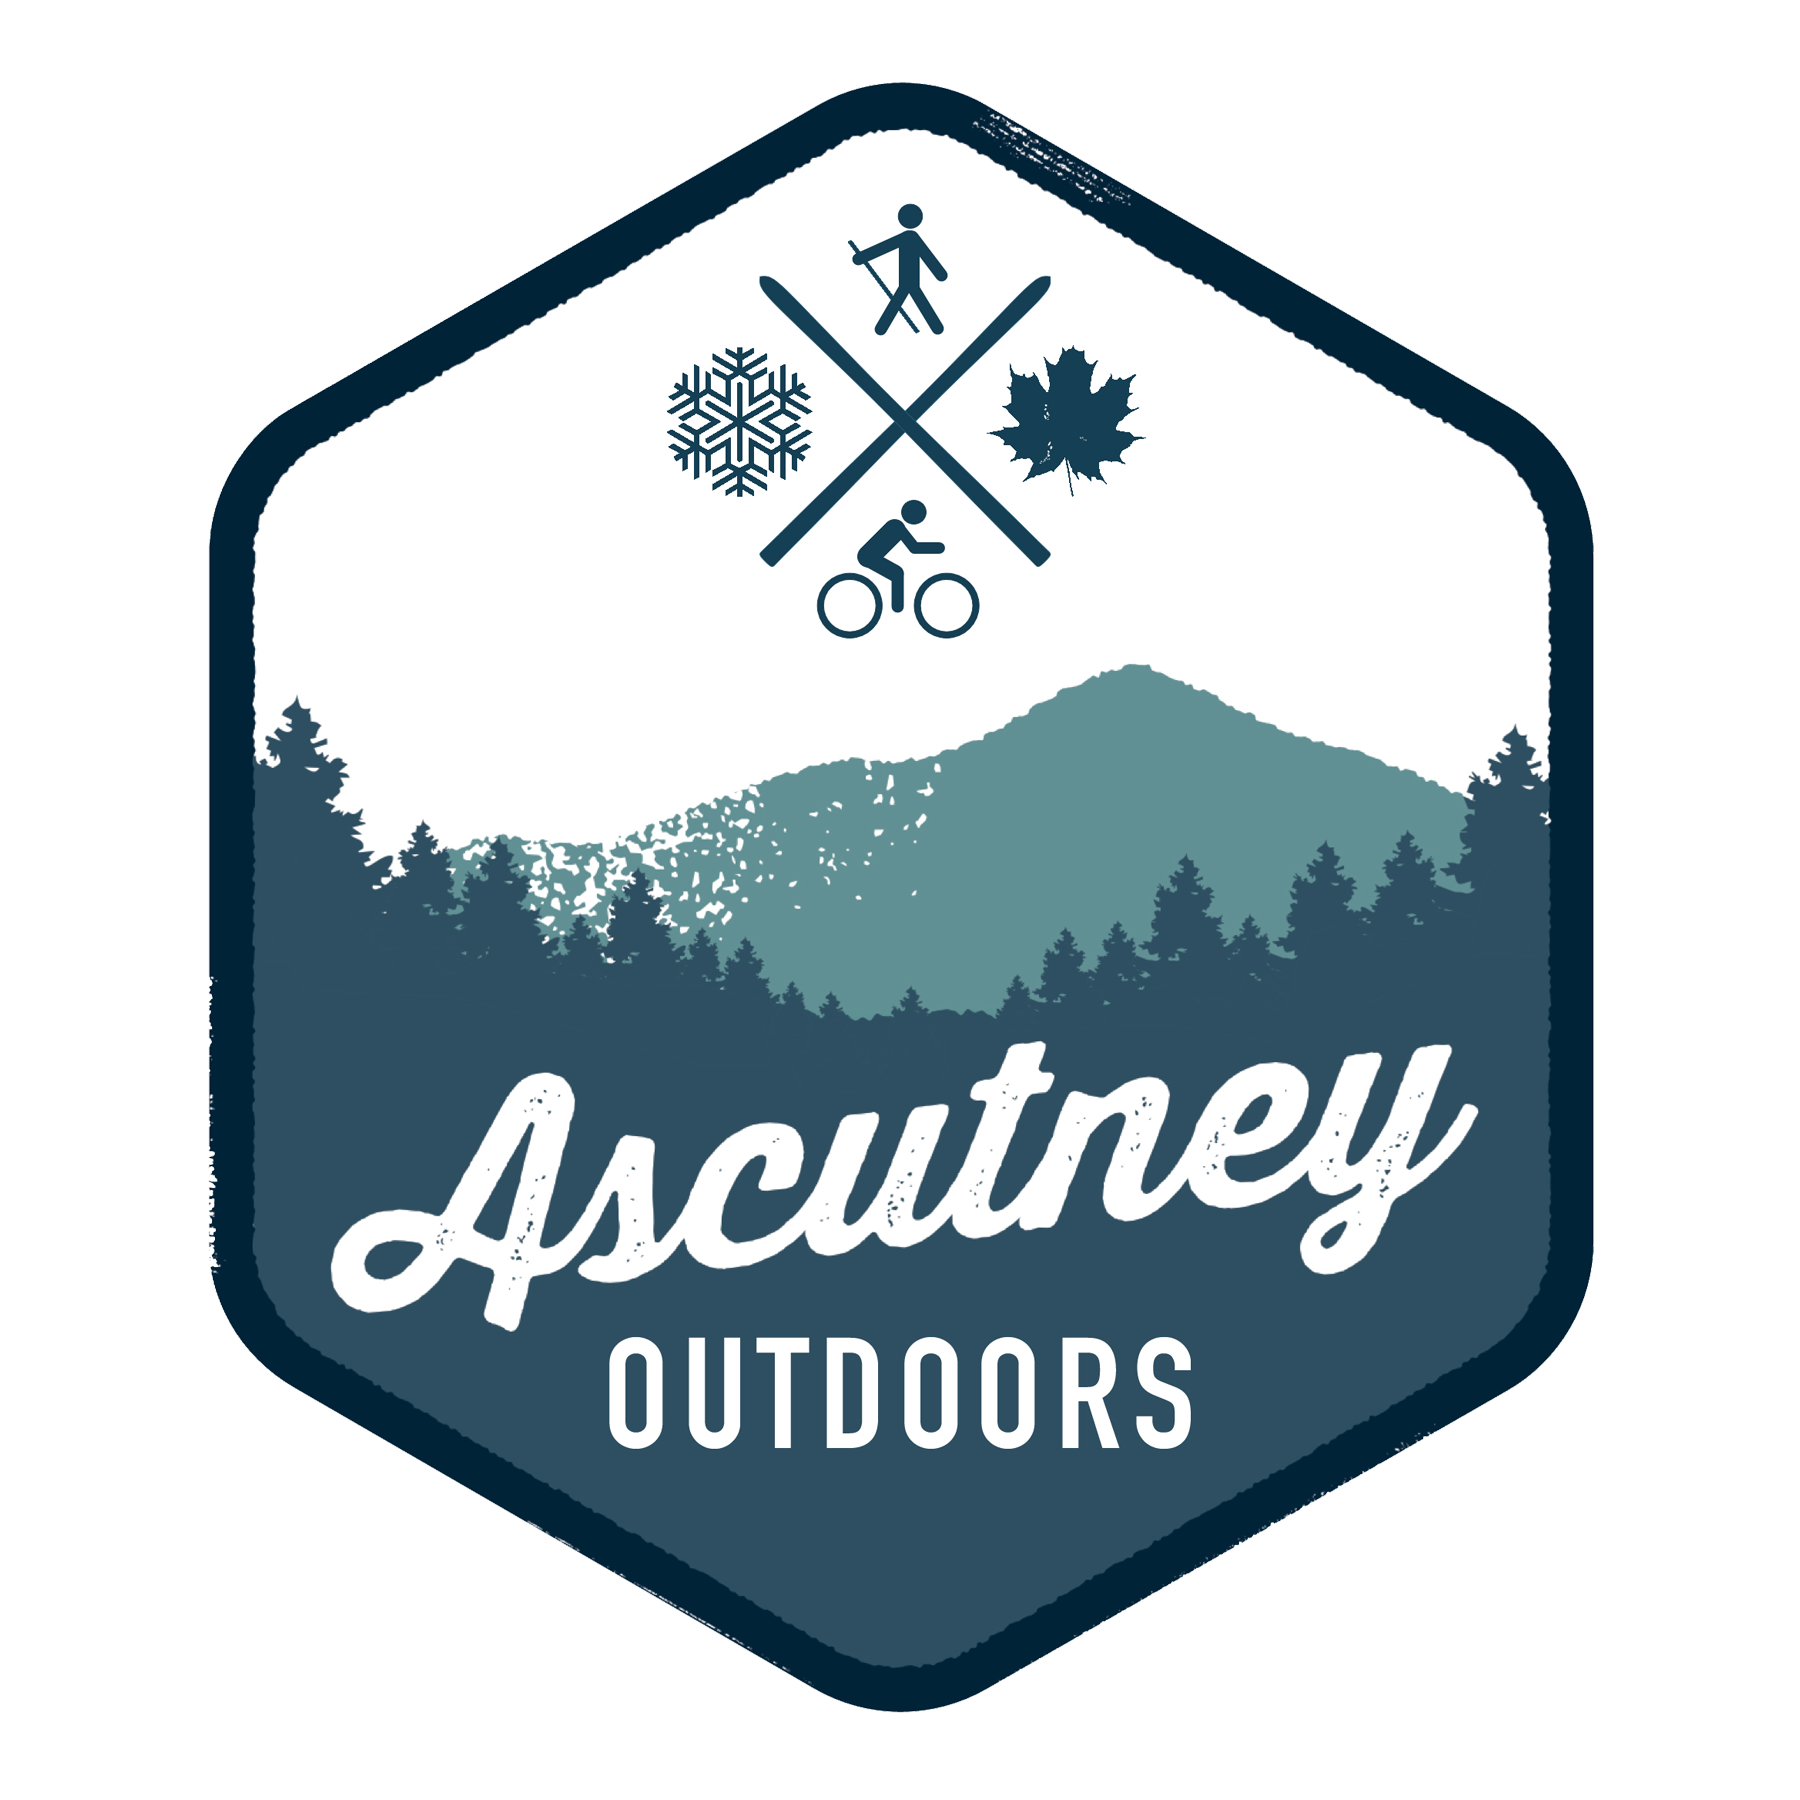 ascutney_outdoors_logo.png